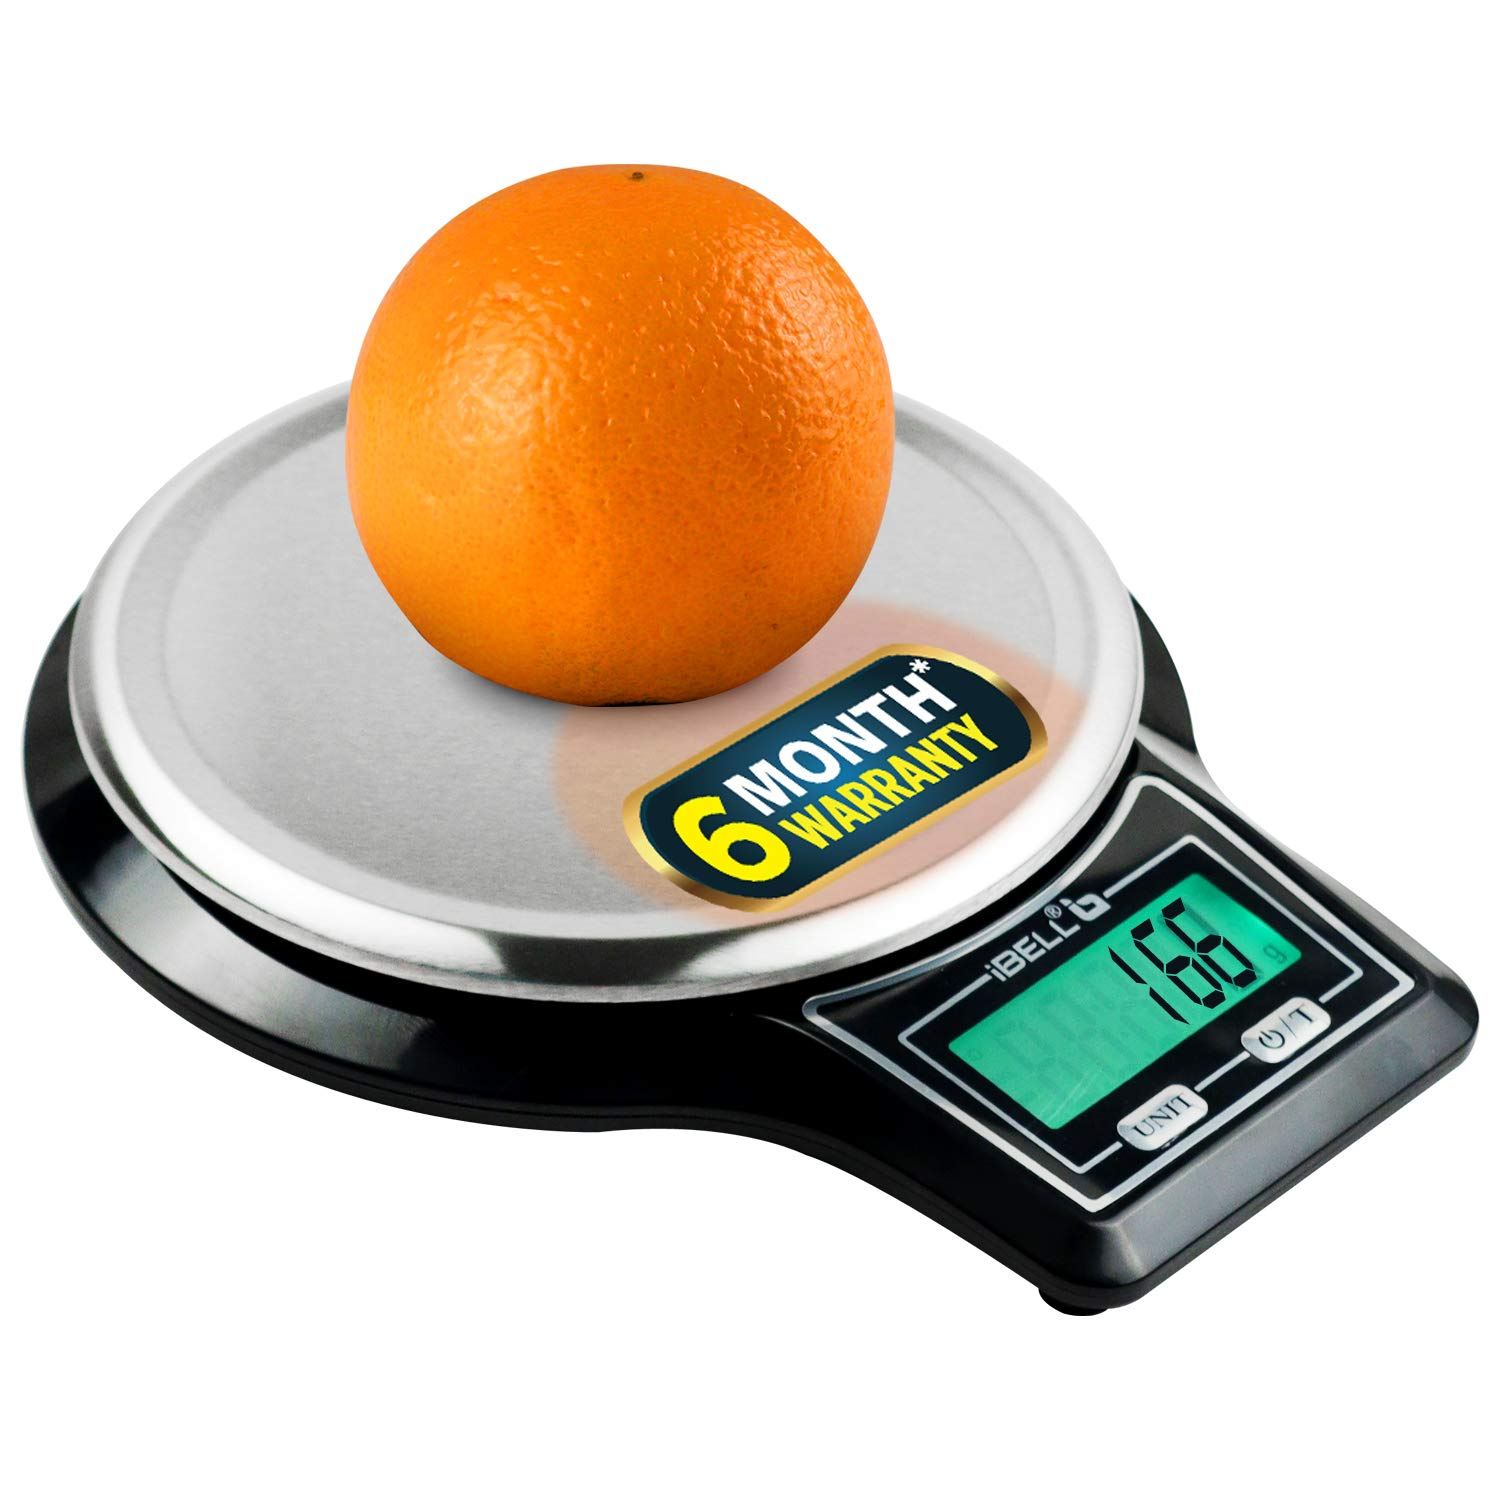 Multipurpose Stainless Steel Digital Kitchen Weighing Scale